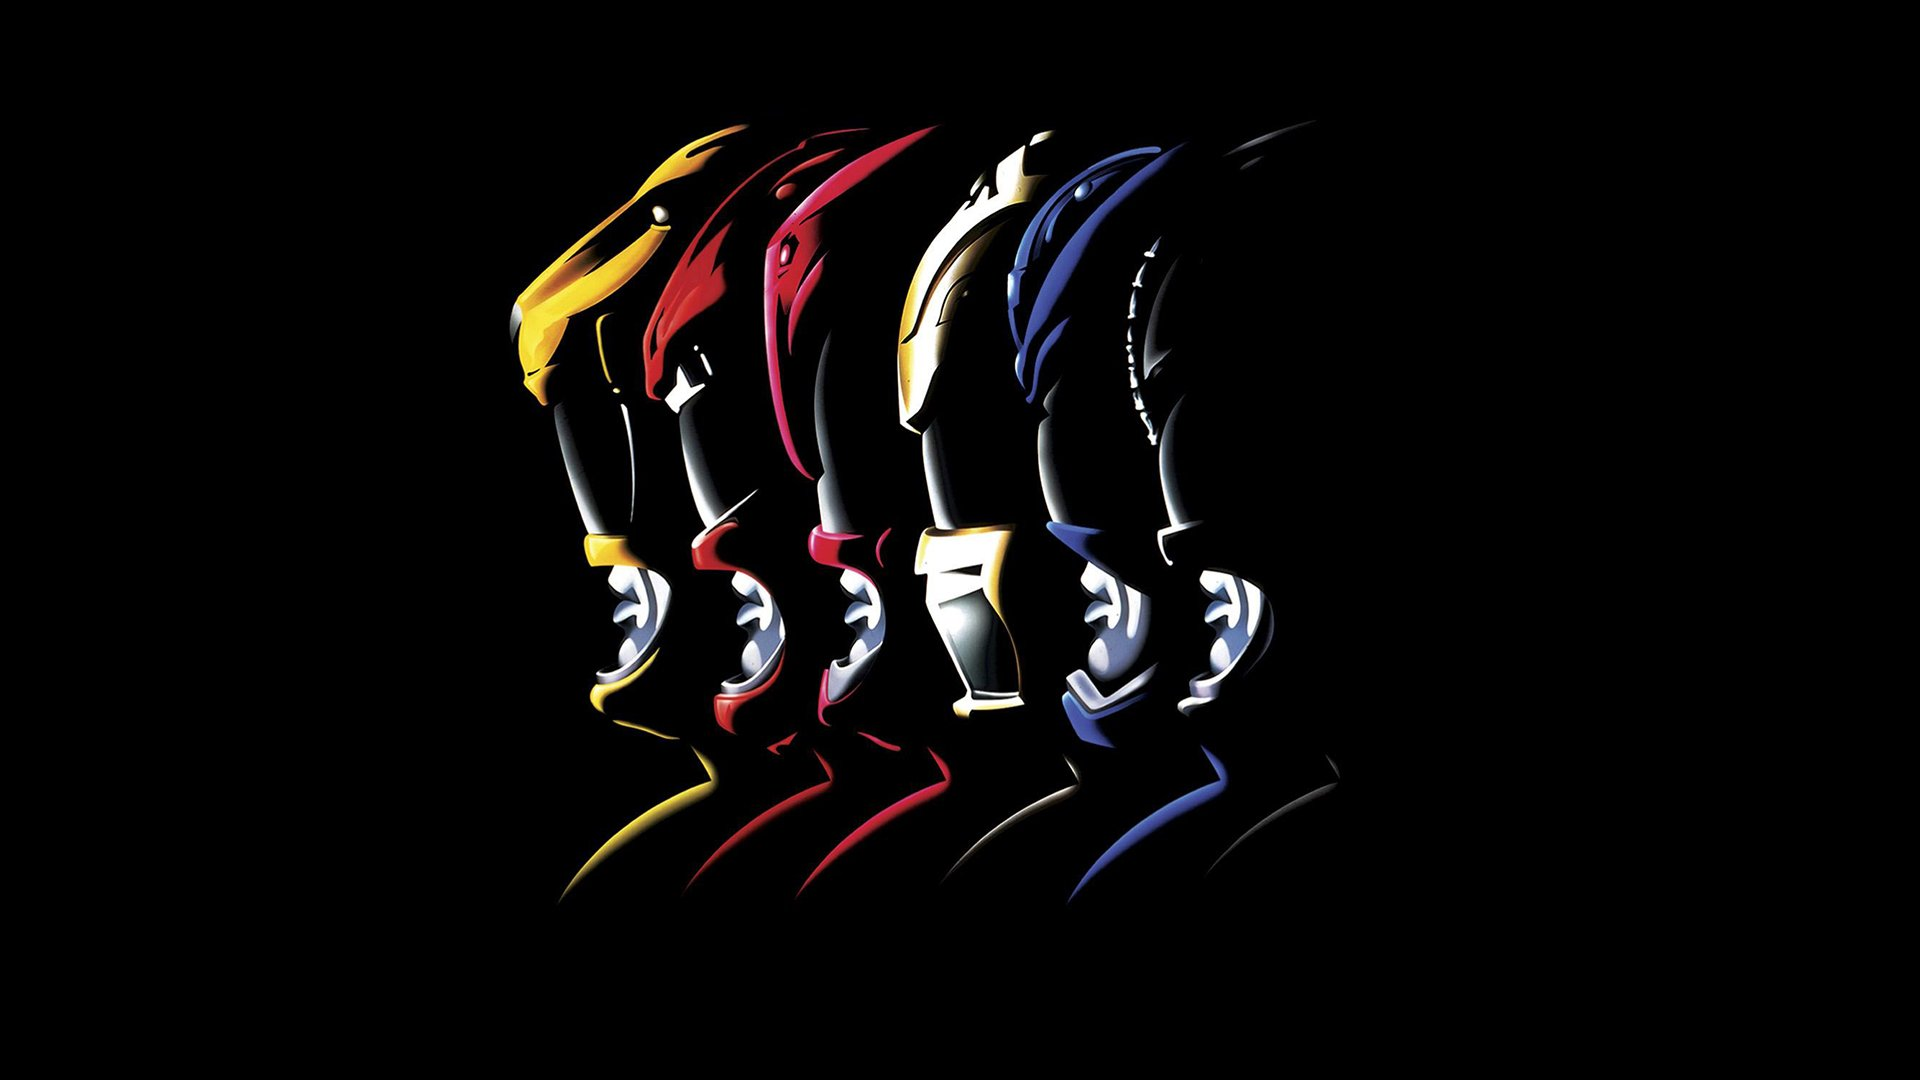 1 Mighty Morphin Power Rangers The Movie Hd Wallpapers Background